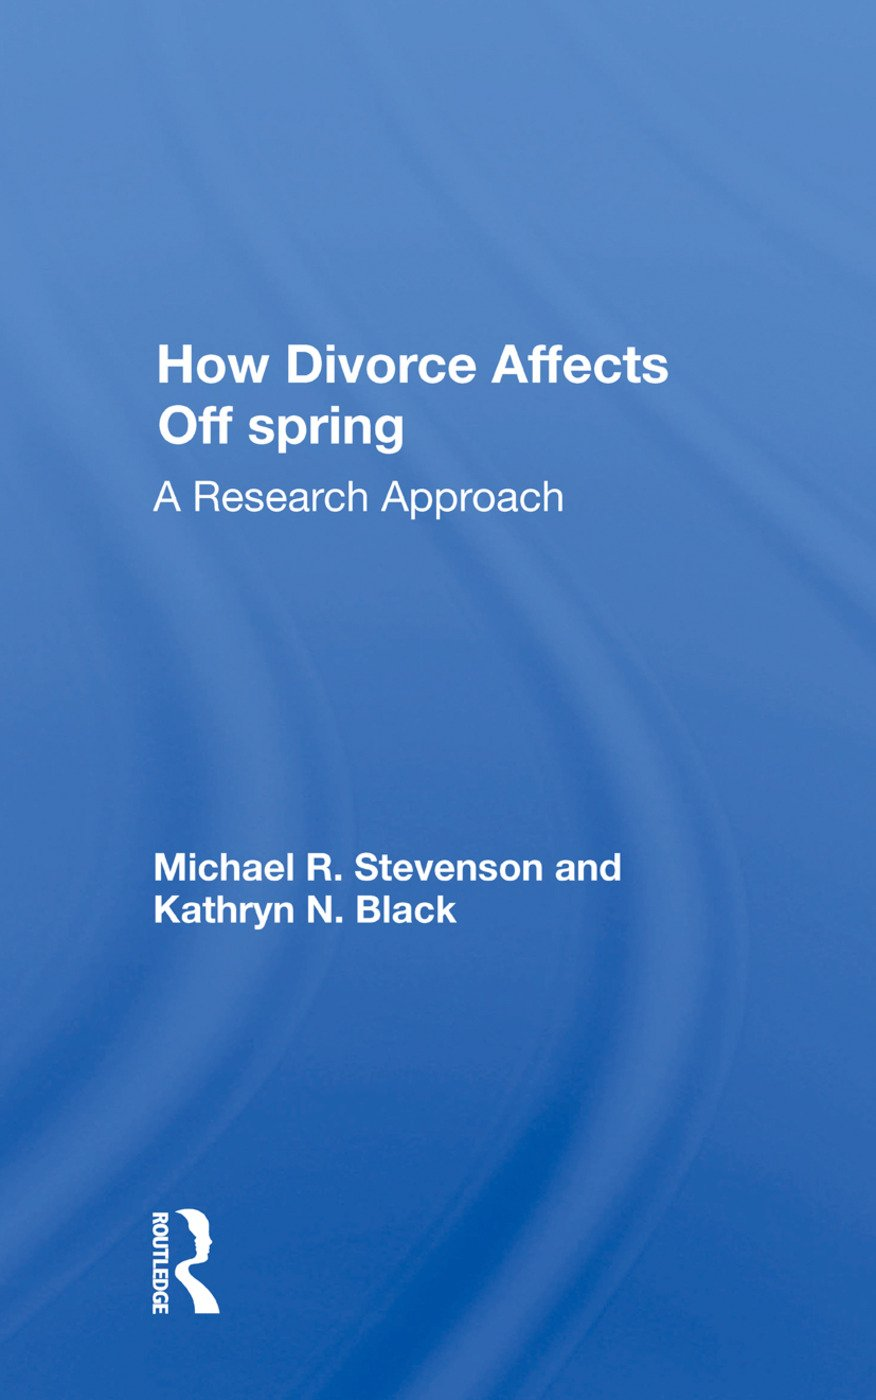 How Divorce Affects Offspring: A Research Approach book cover